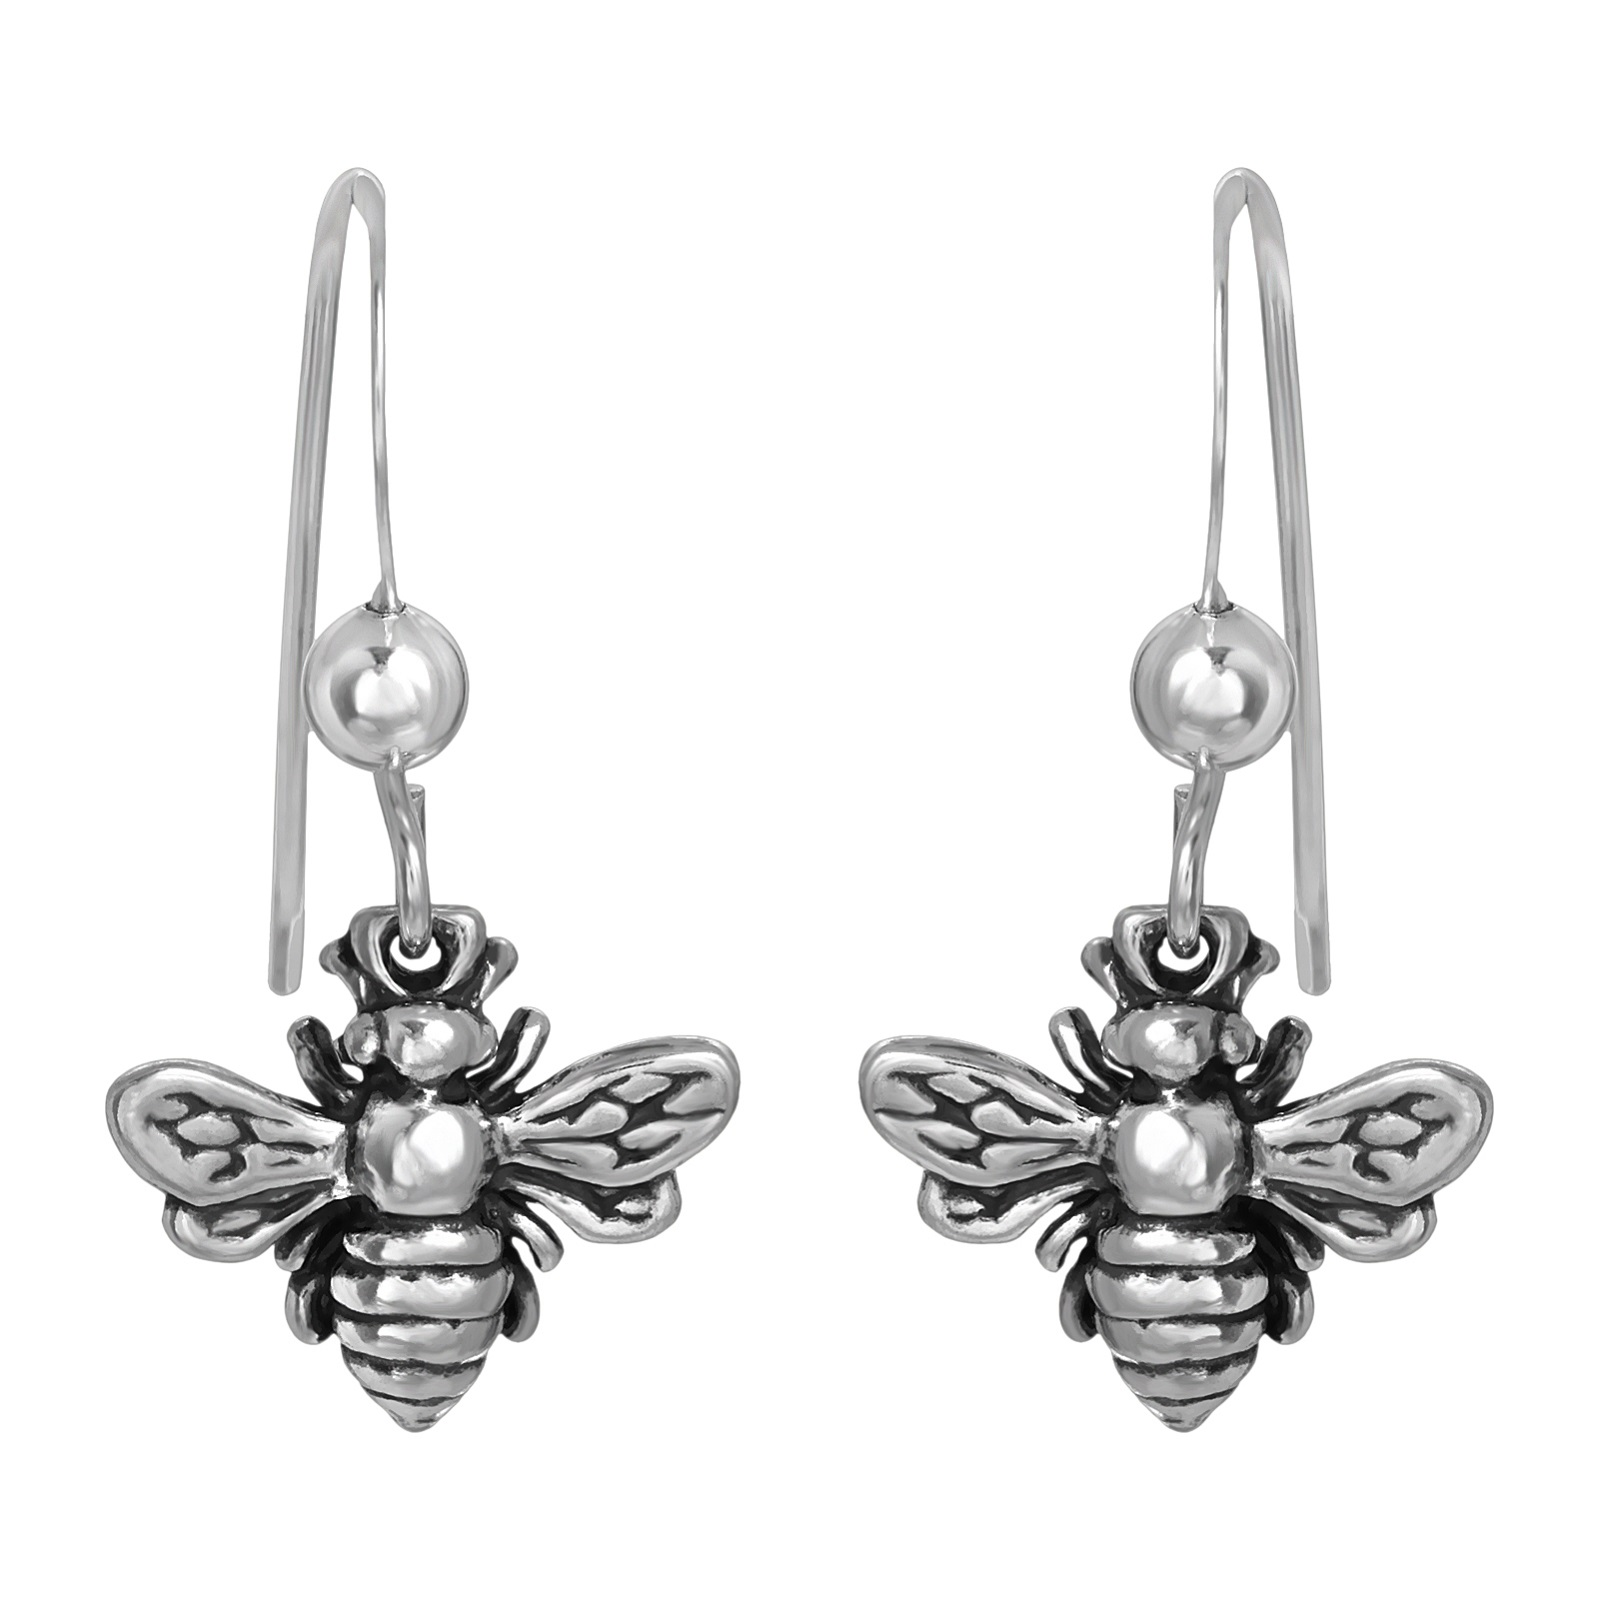 Sterling Silver Bumble Bee Earrings - Oxidized